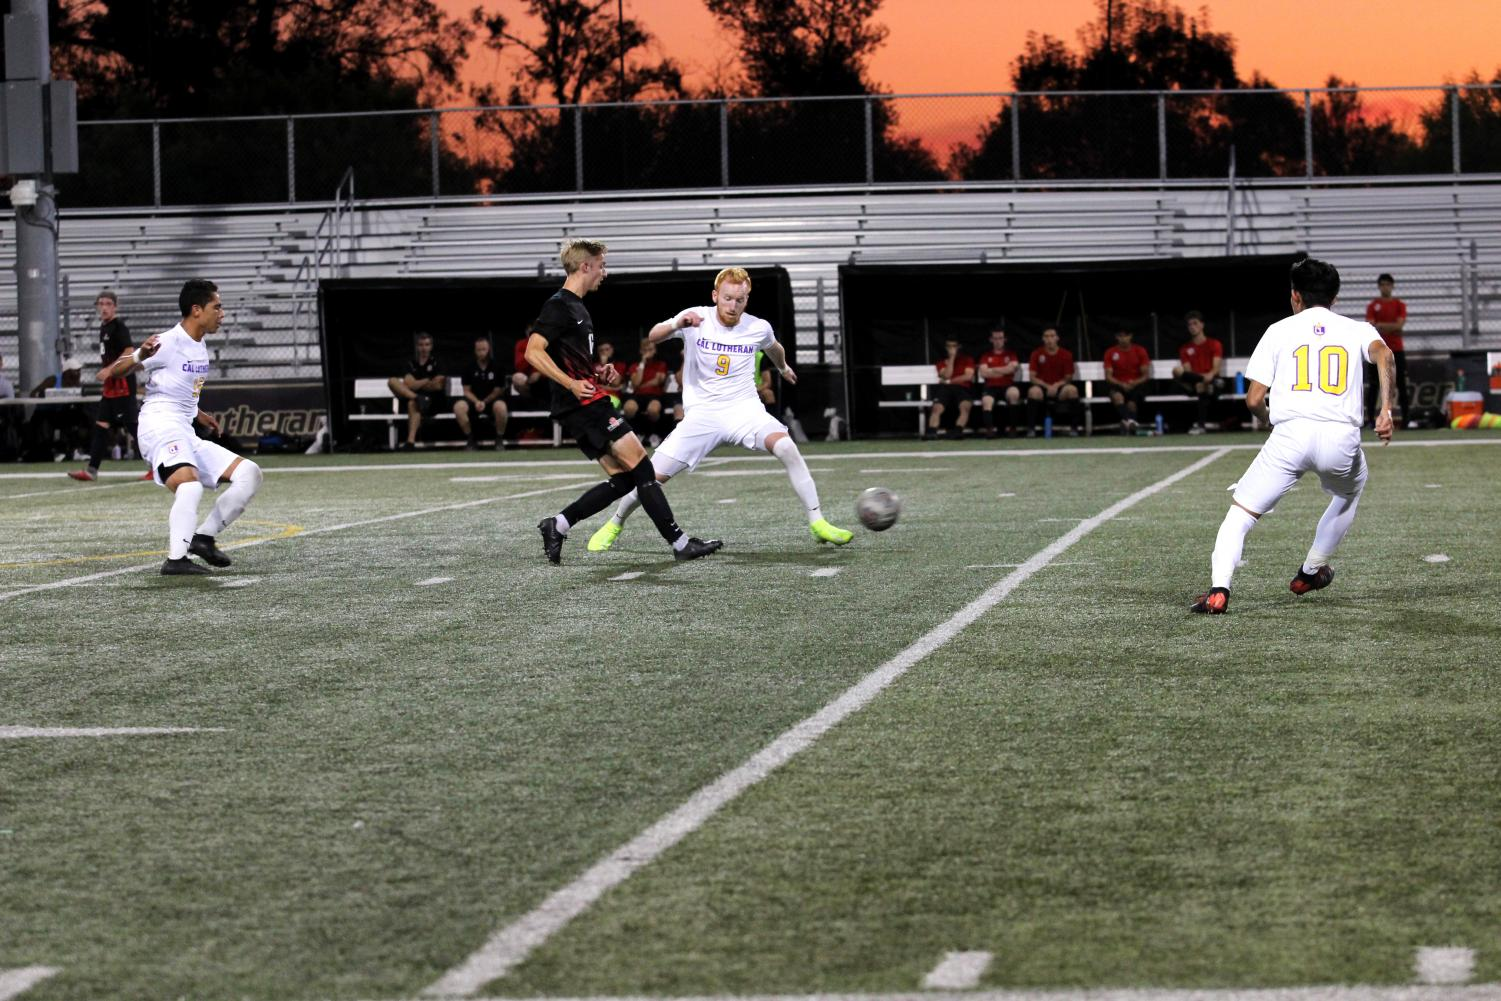 Senior forward, Aaron Winsick, made the first goal of the night against the Foresters.